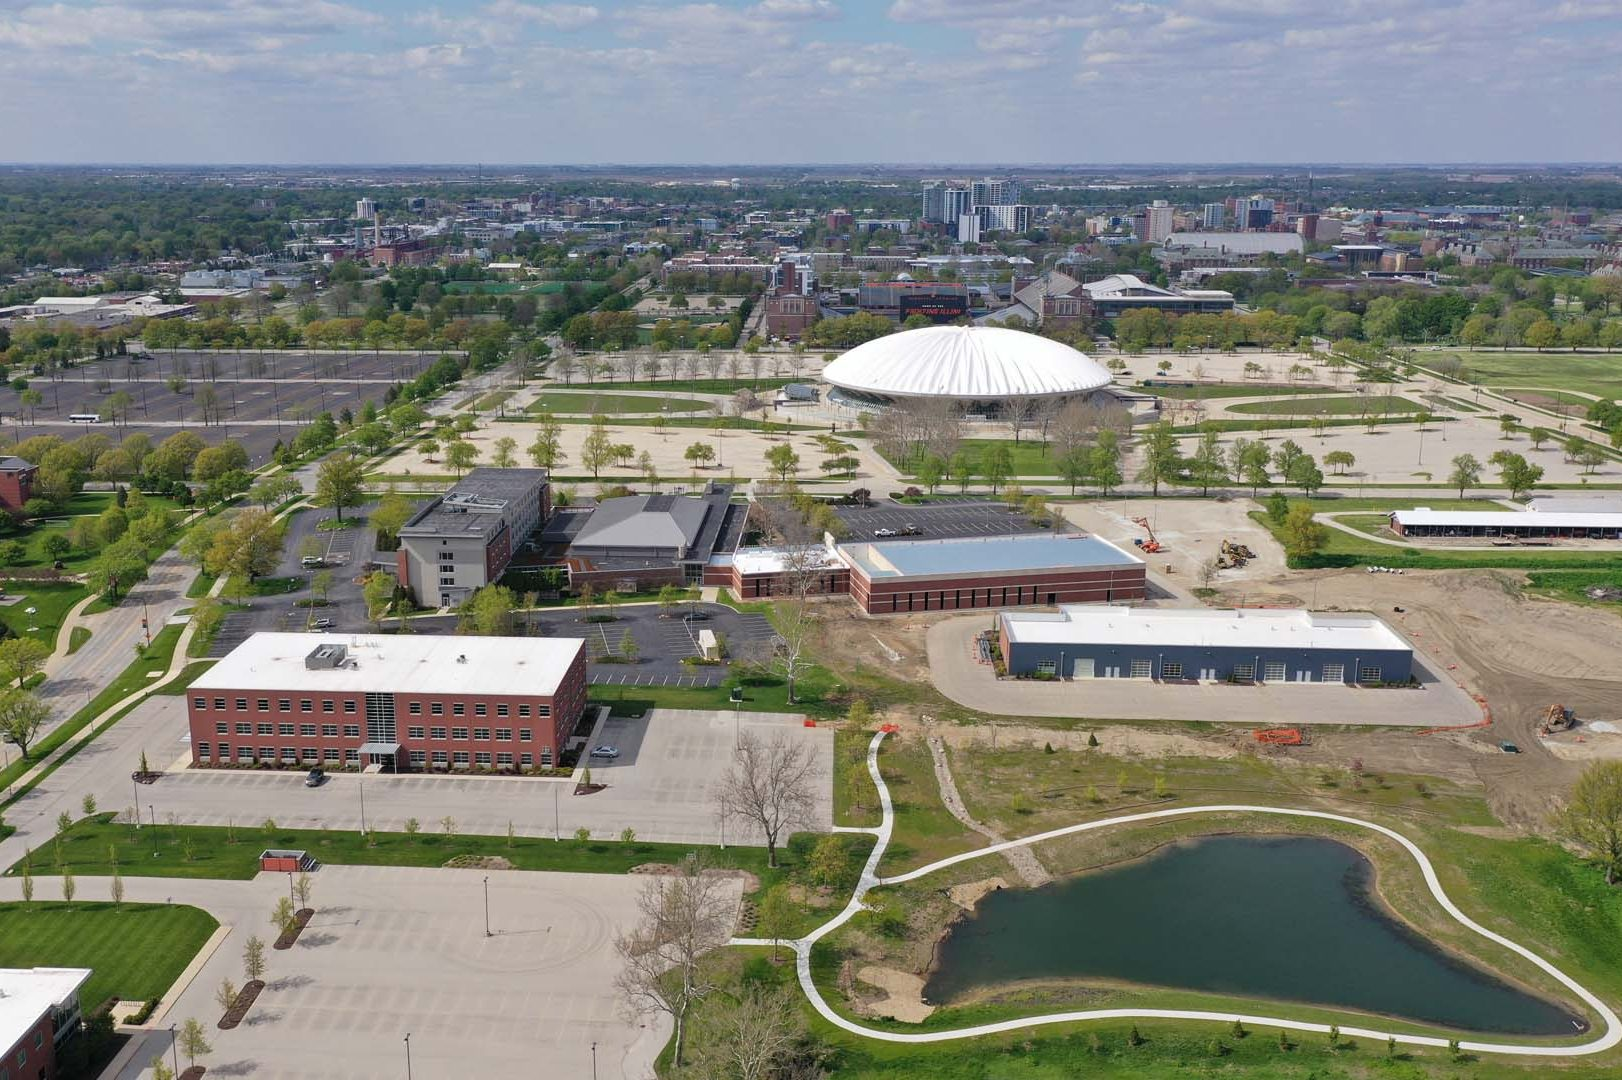 Bird's-eye View of North of Research Park